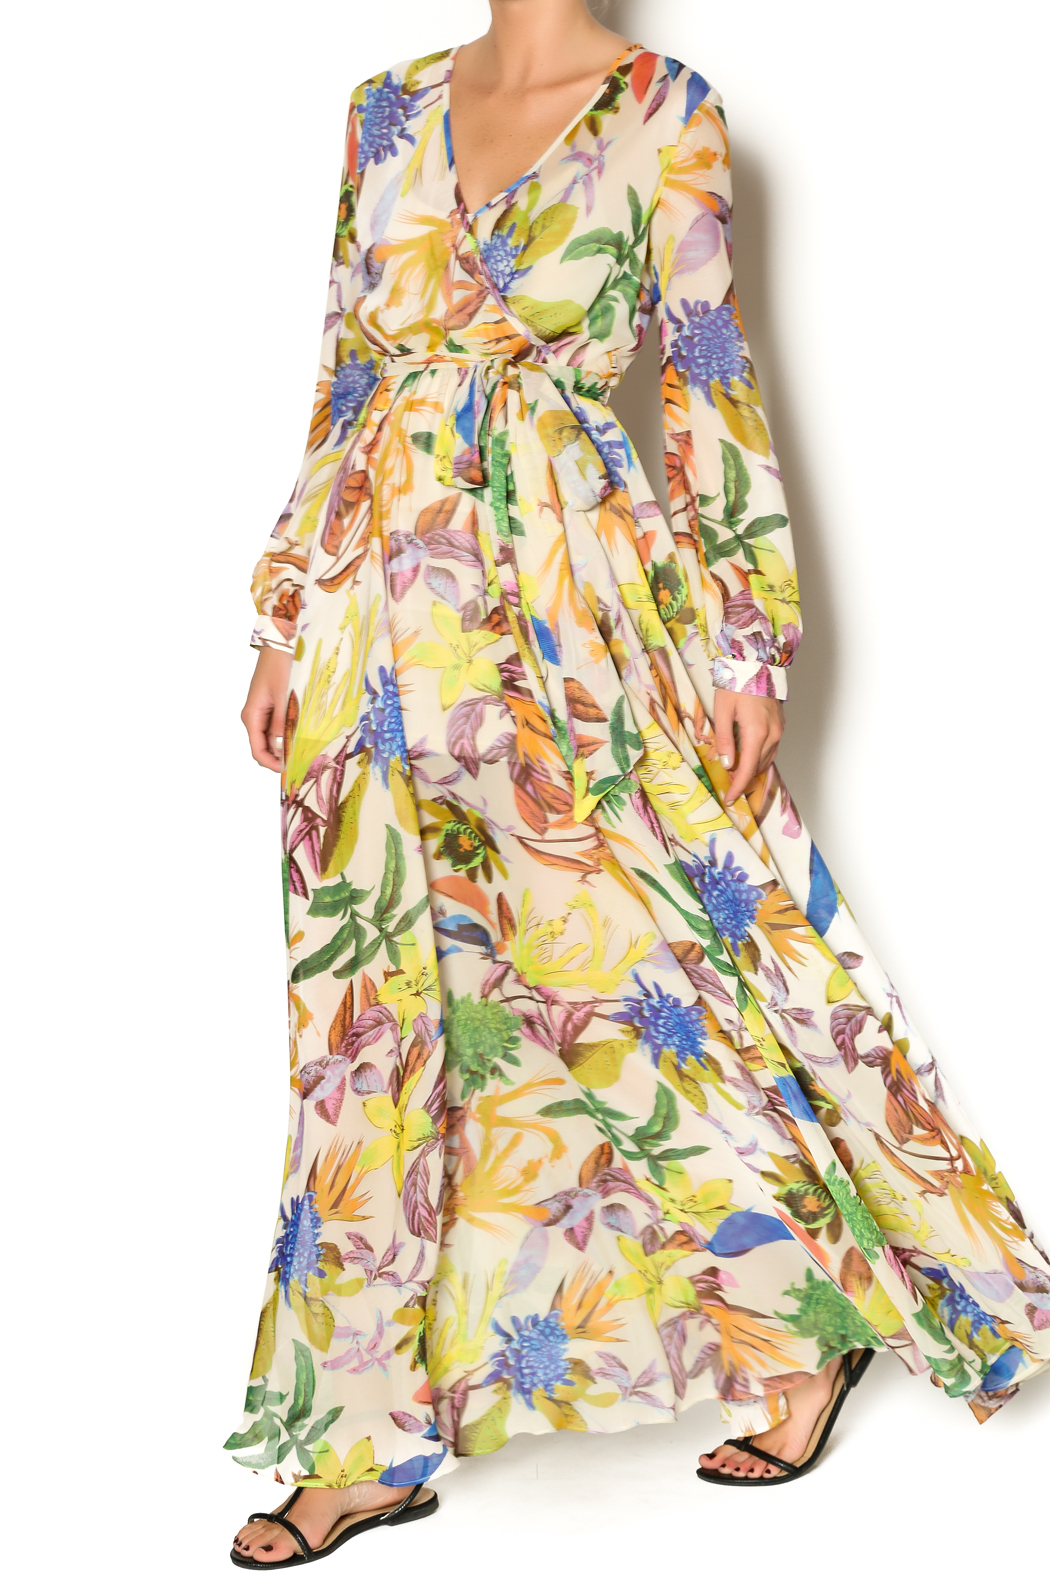 Ark and co yellow dress